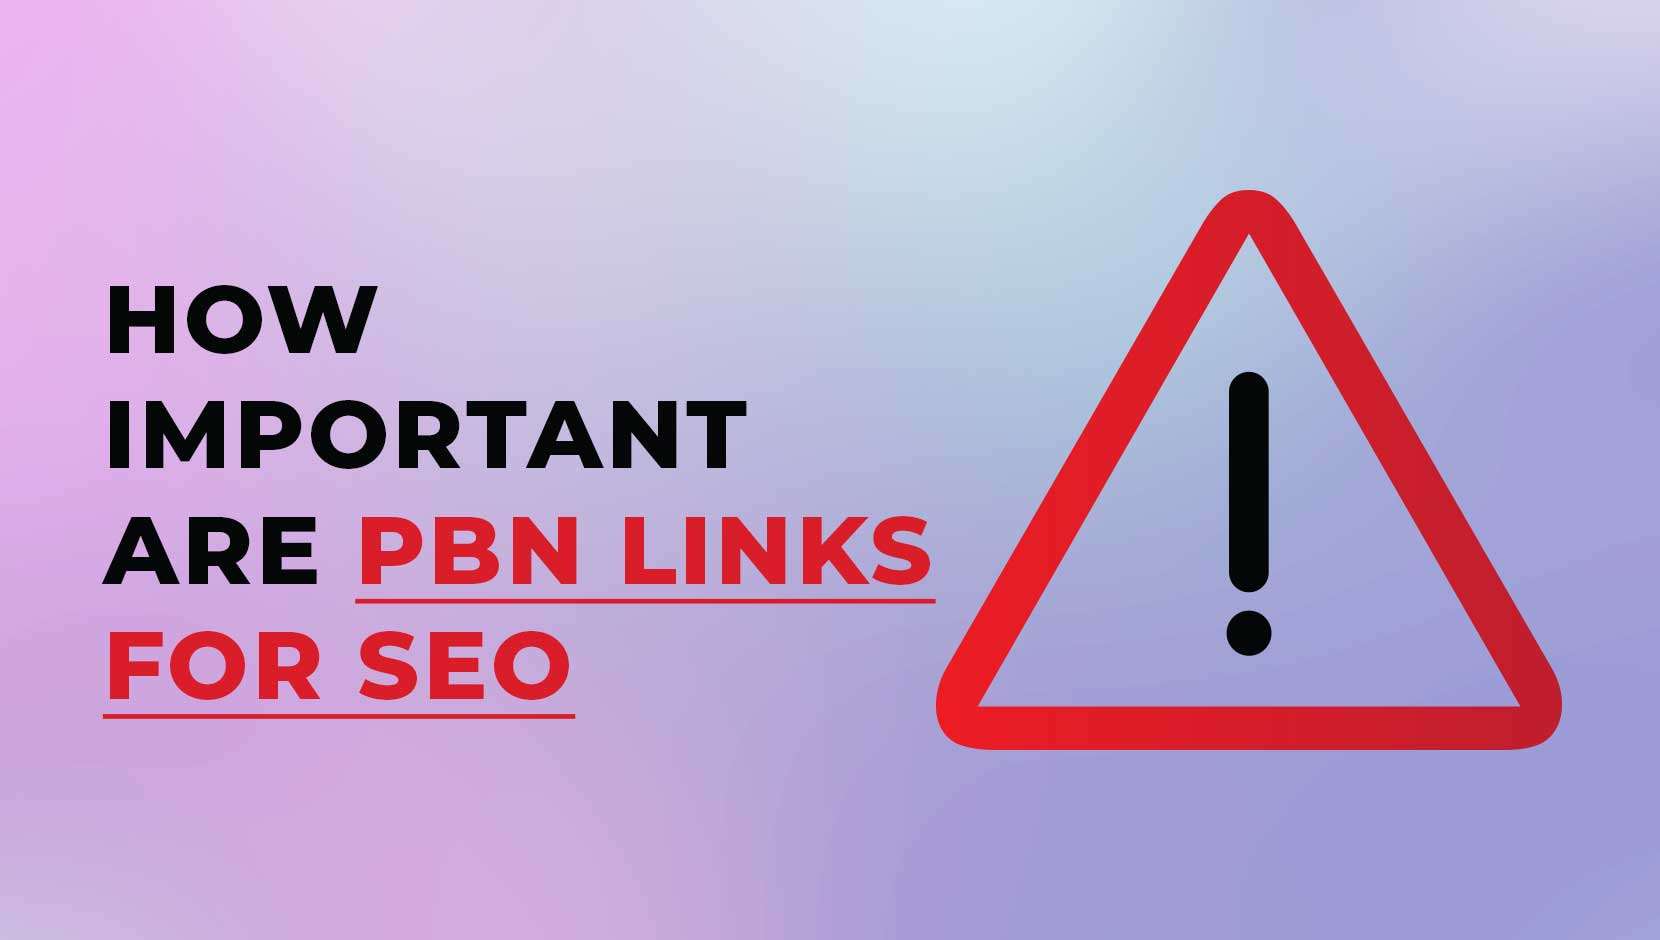 How Important are PBN Links for SEO?